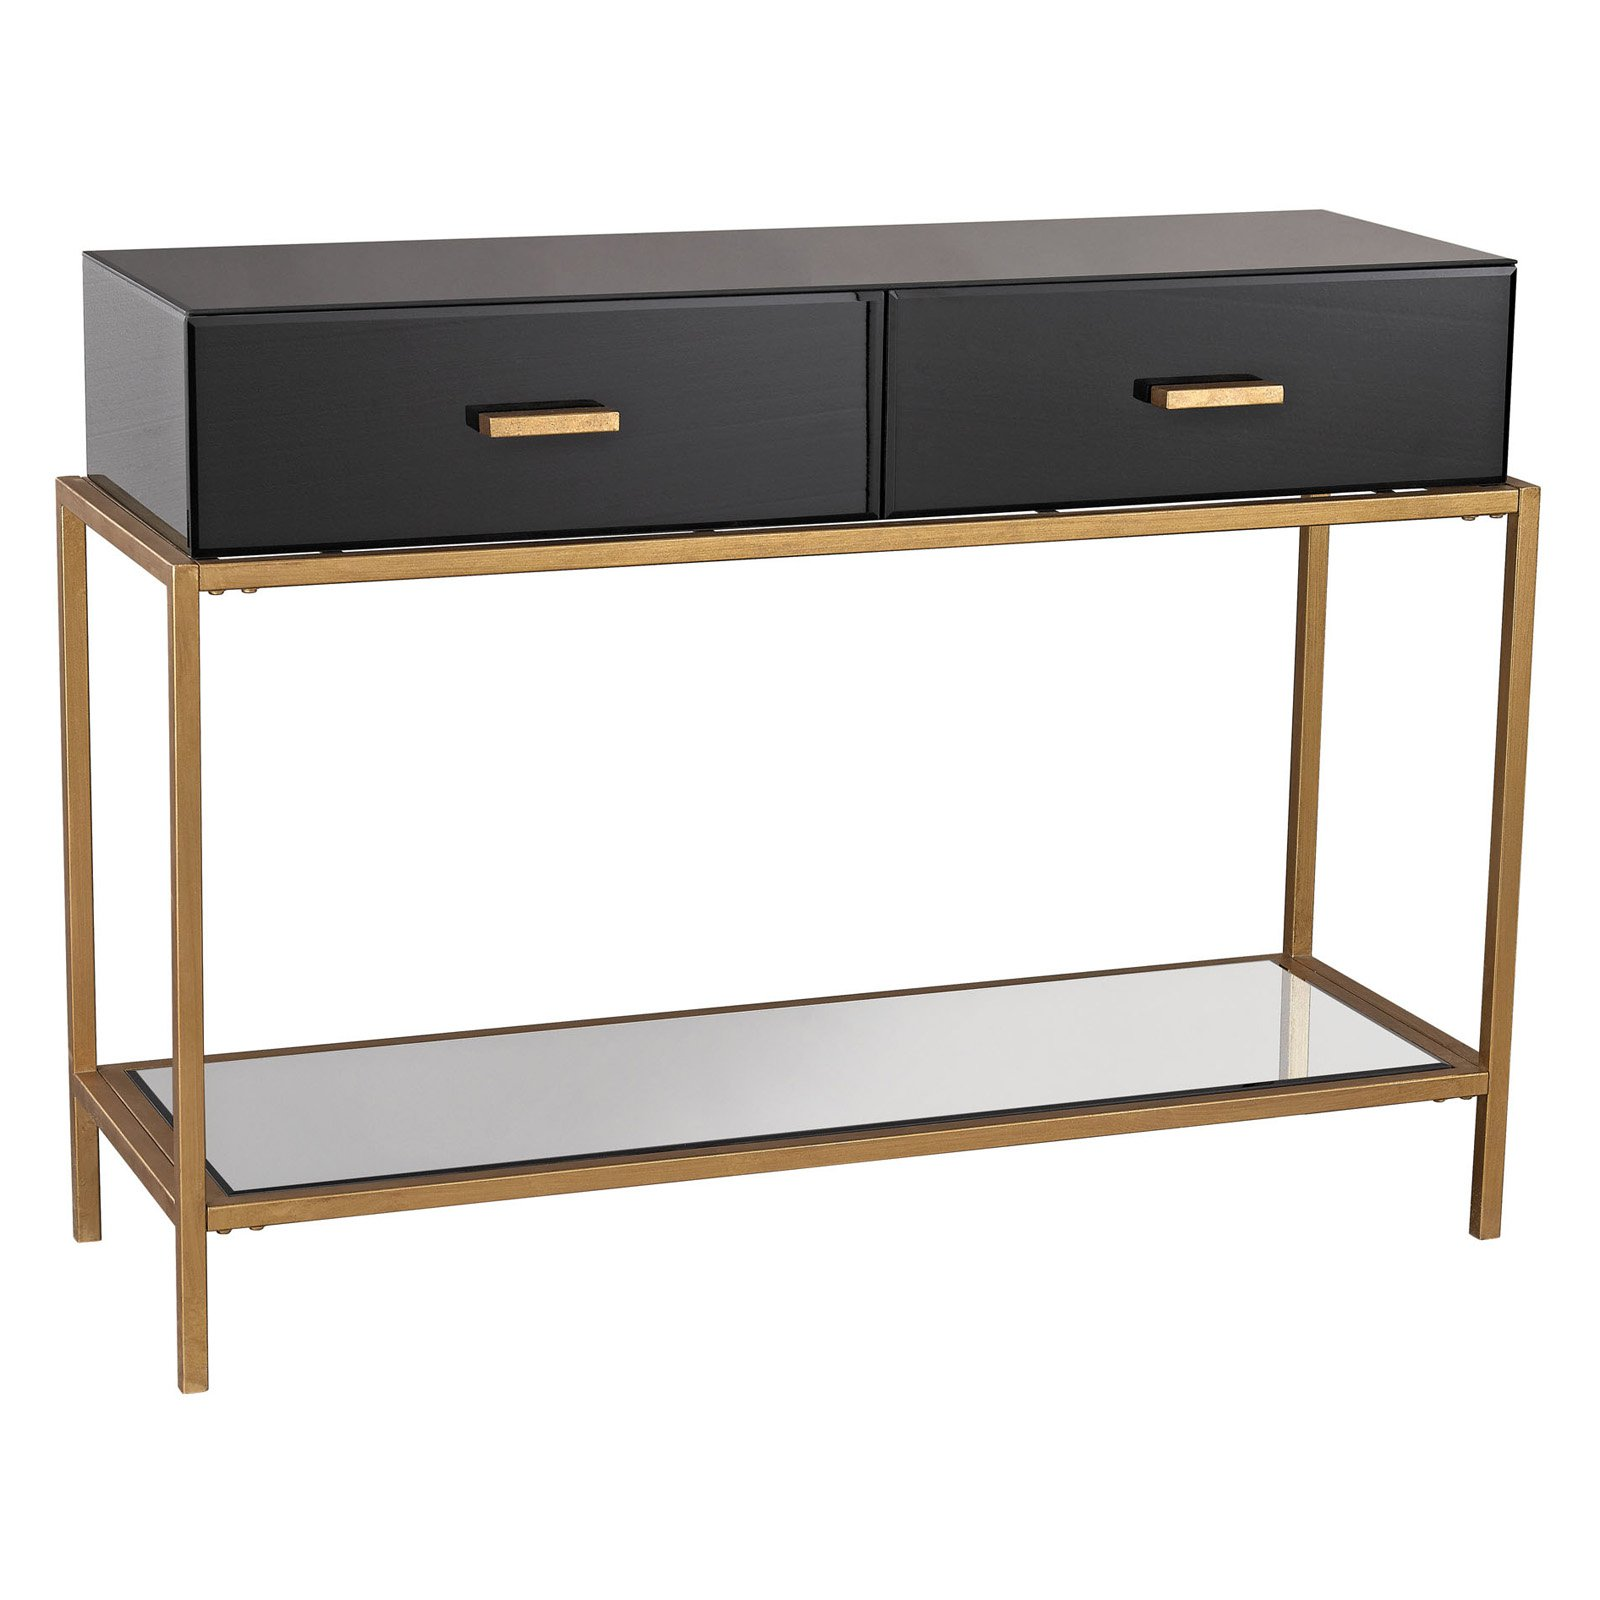 Dimond Home Evans Console Table by Dimond Home